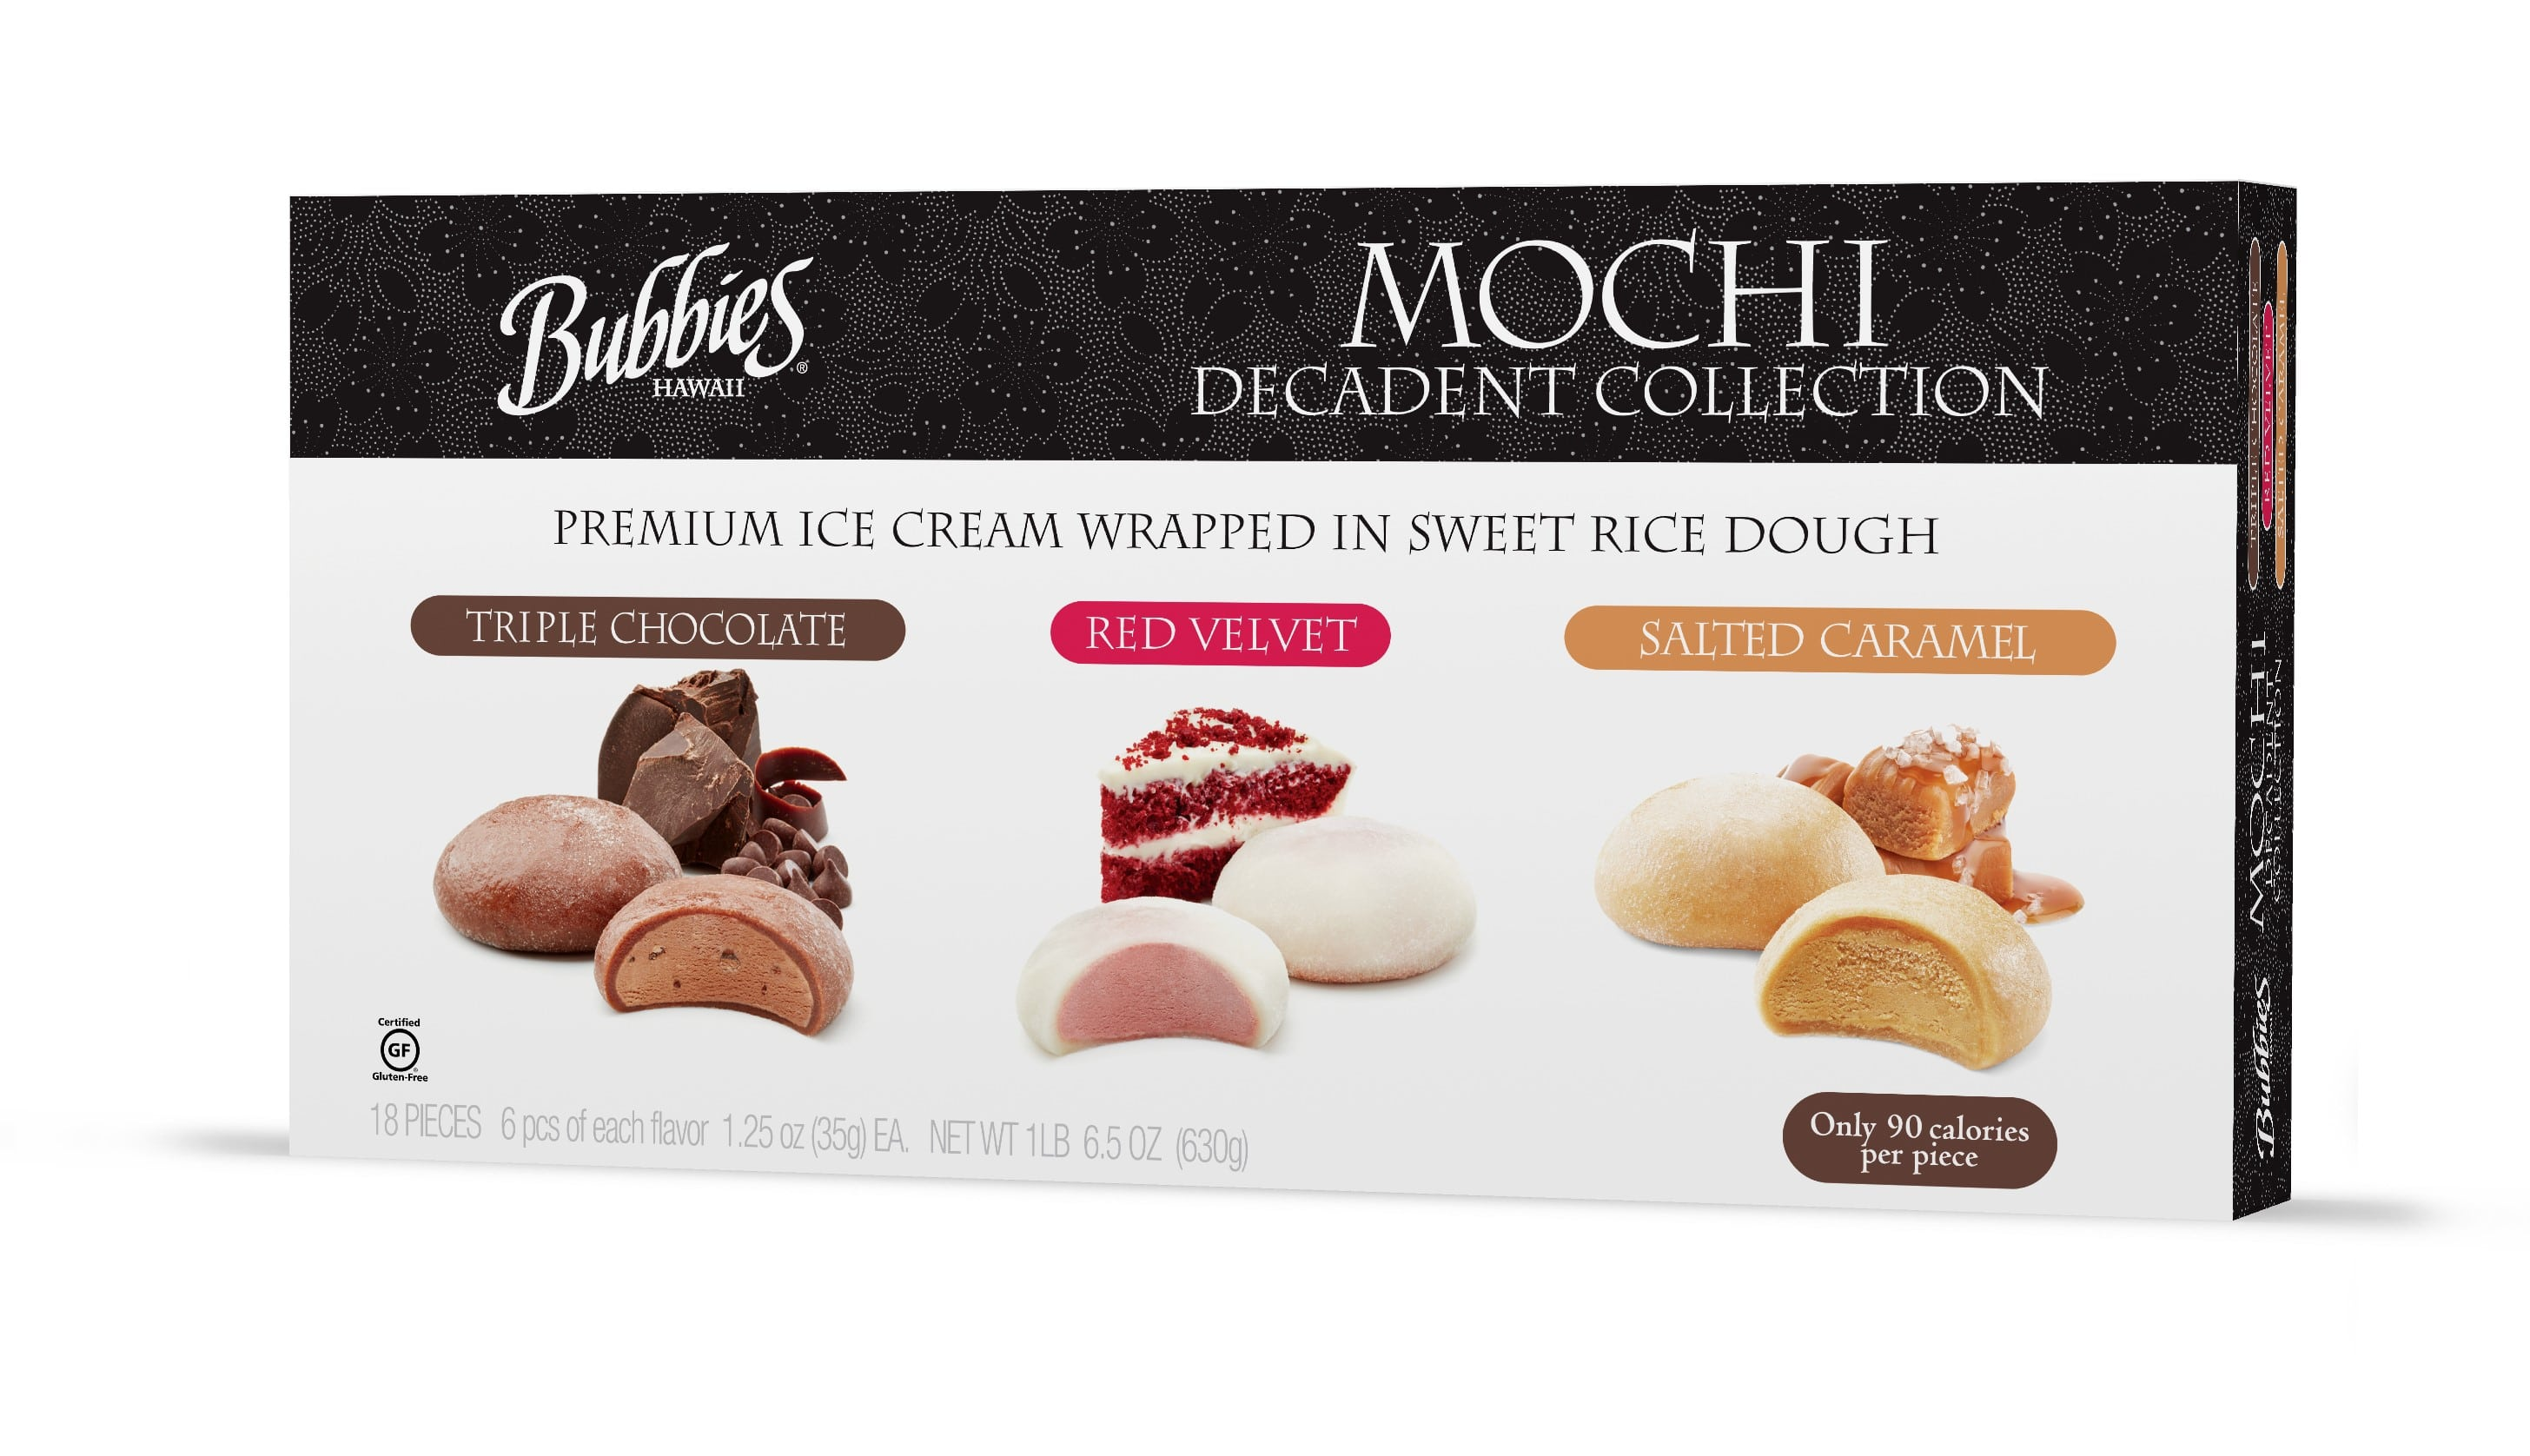 Bubbies Mochi Ice Cream Expands Costco Offerings With New Collection